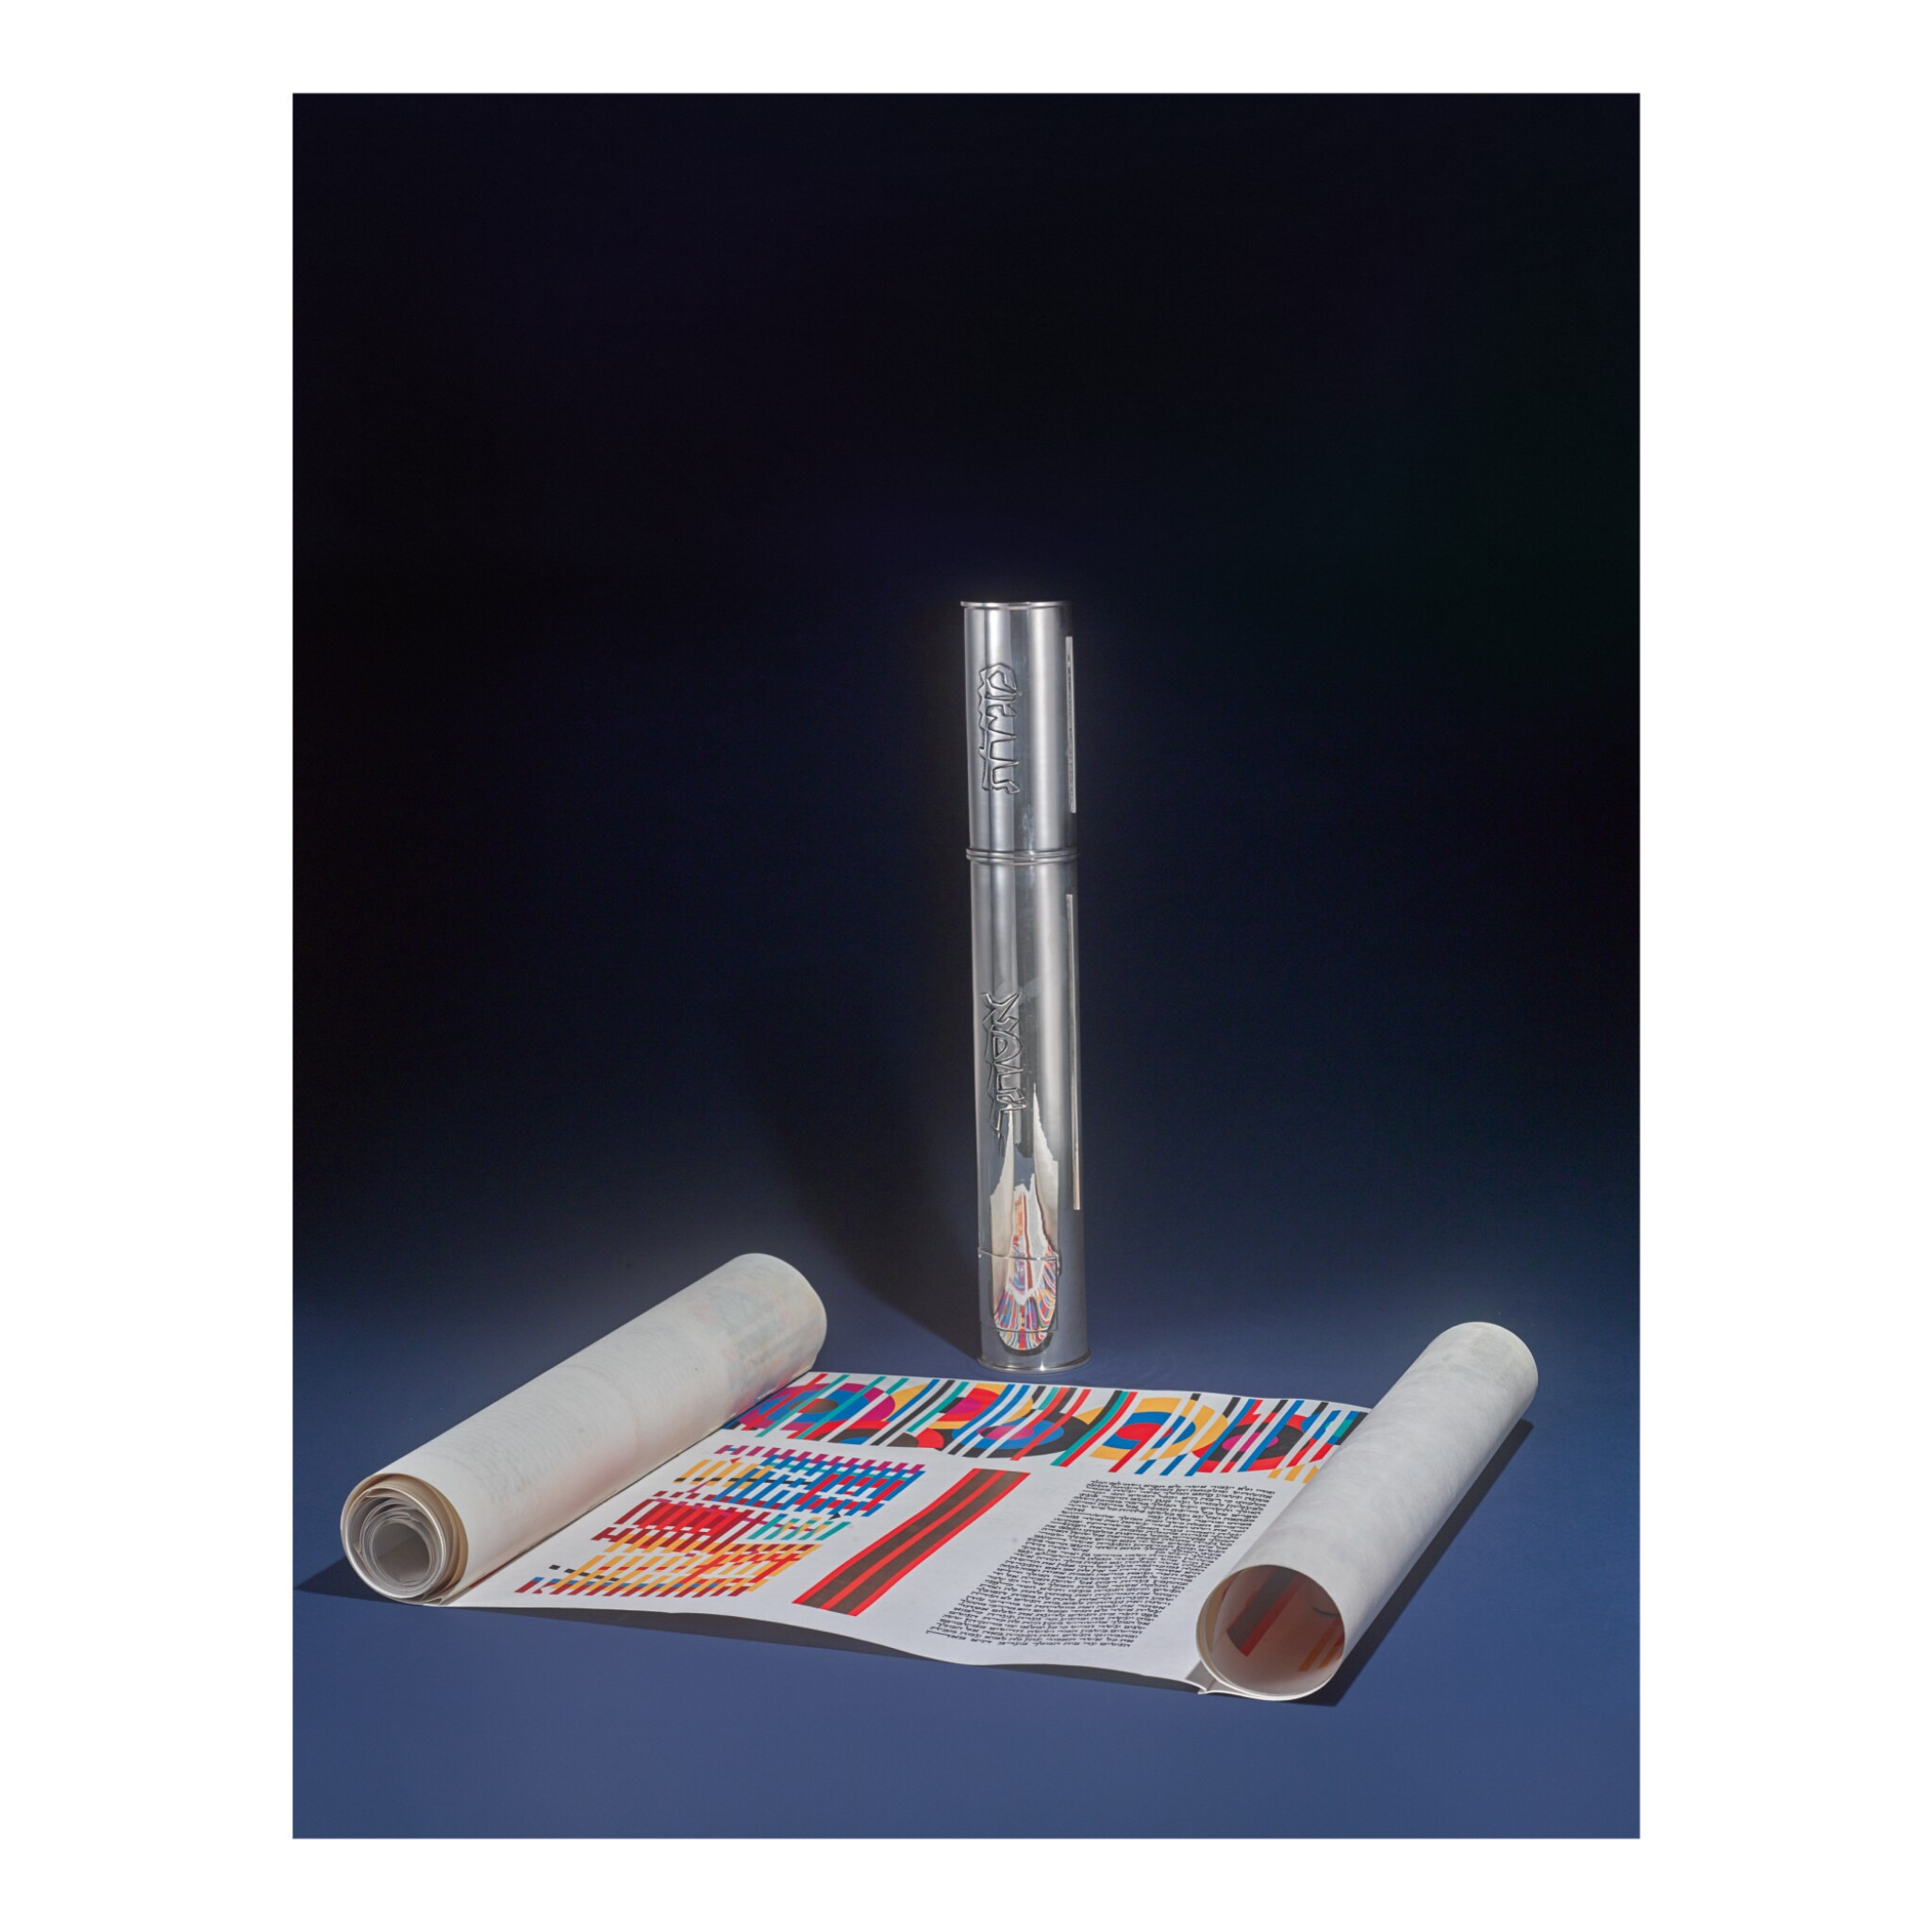 THE YAACOB AGAM MEGILLAH (SCROLL OF ESTHER) IN A SILVER CASE STAMPED WOLPERT, C. 1980